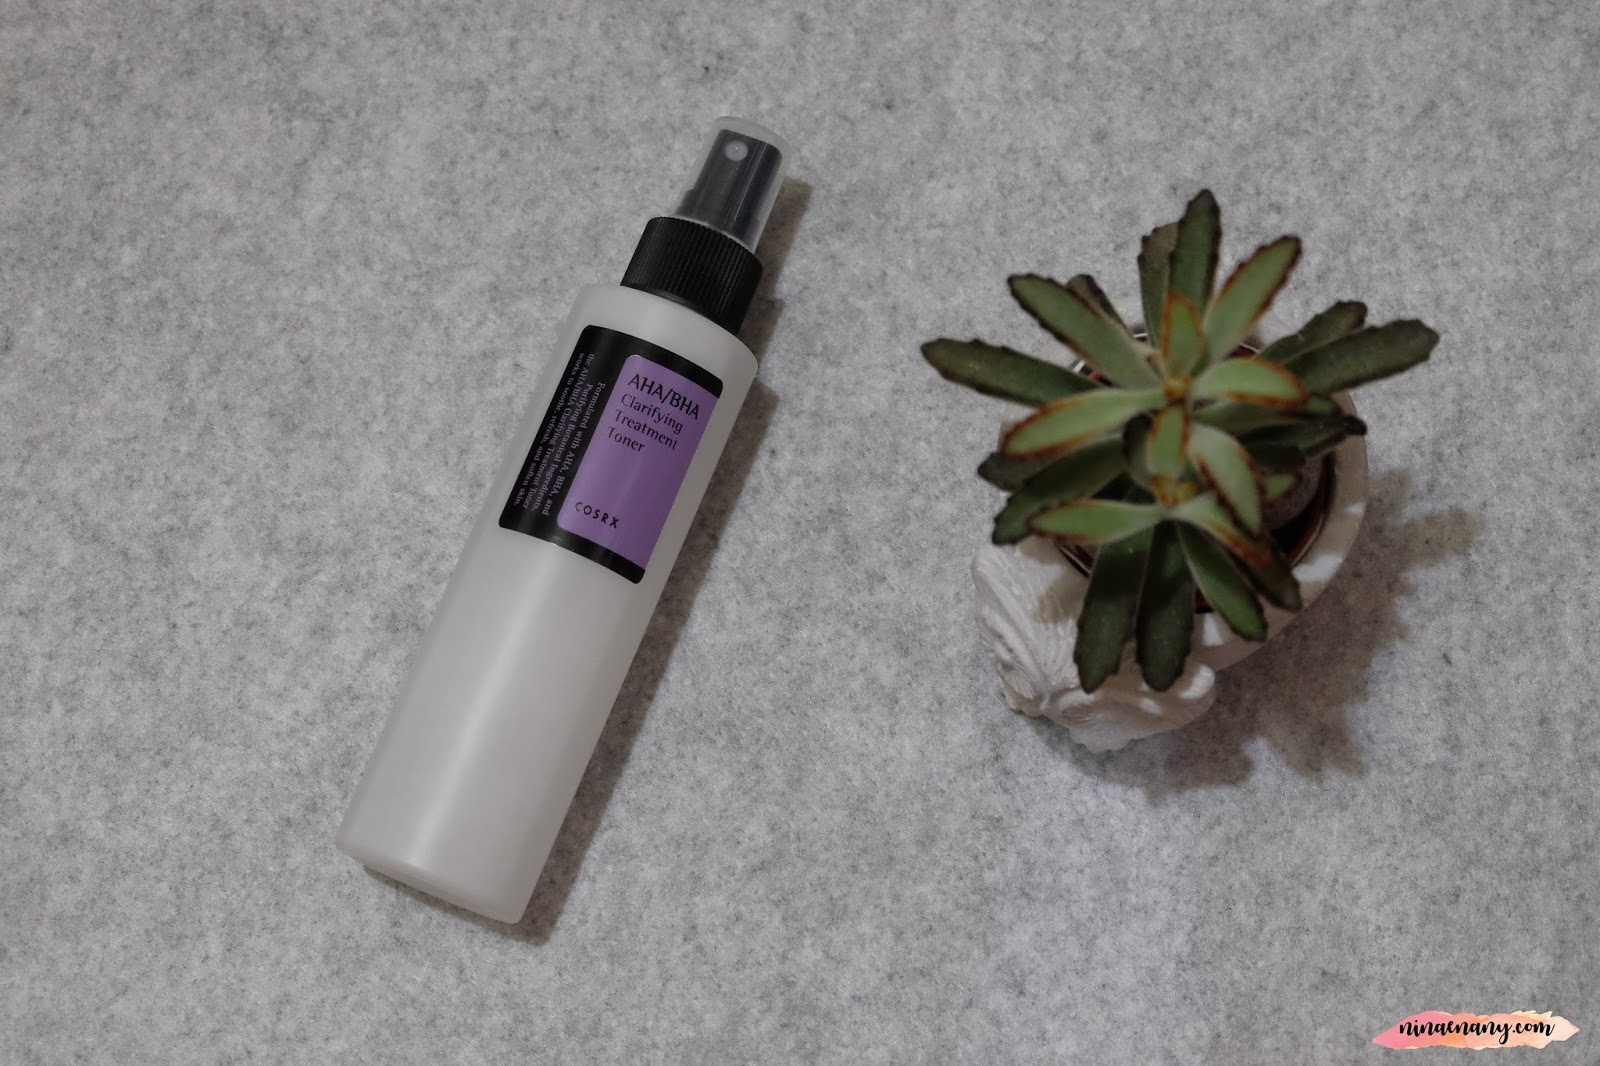 Beauty Korean Skincare Haul By Cosrx Nina Enany Aha Bha Clarifying Treatment Toner 150ml The Second Review About Is Made With Mineral Water To Rejuvenate For